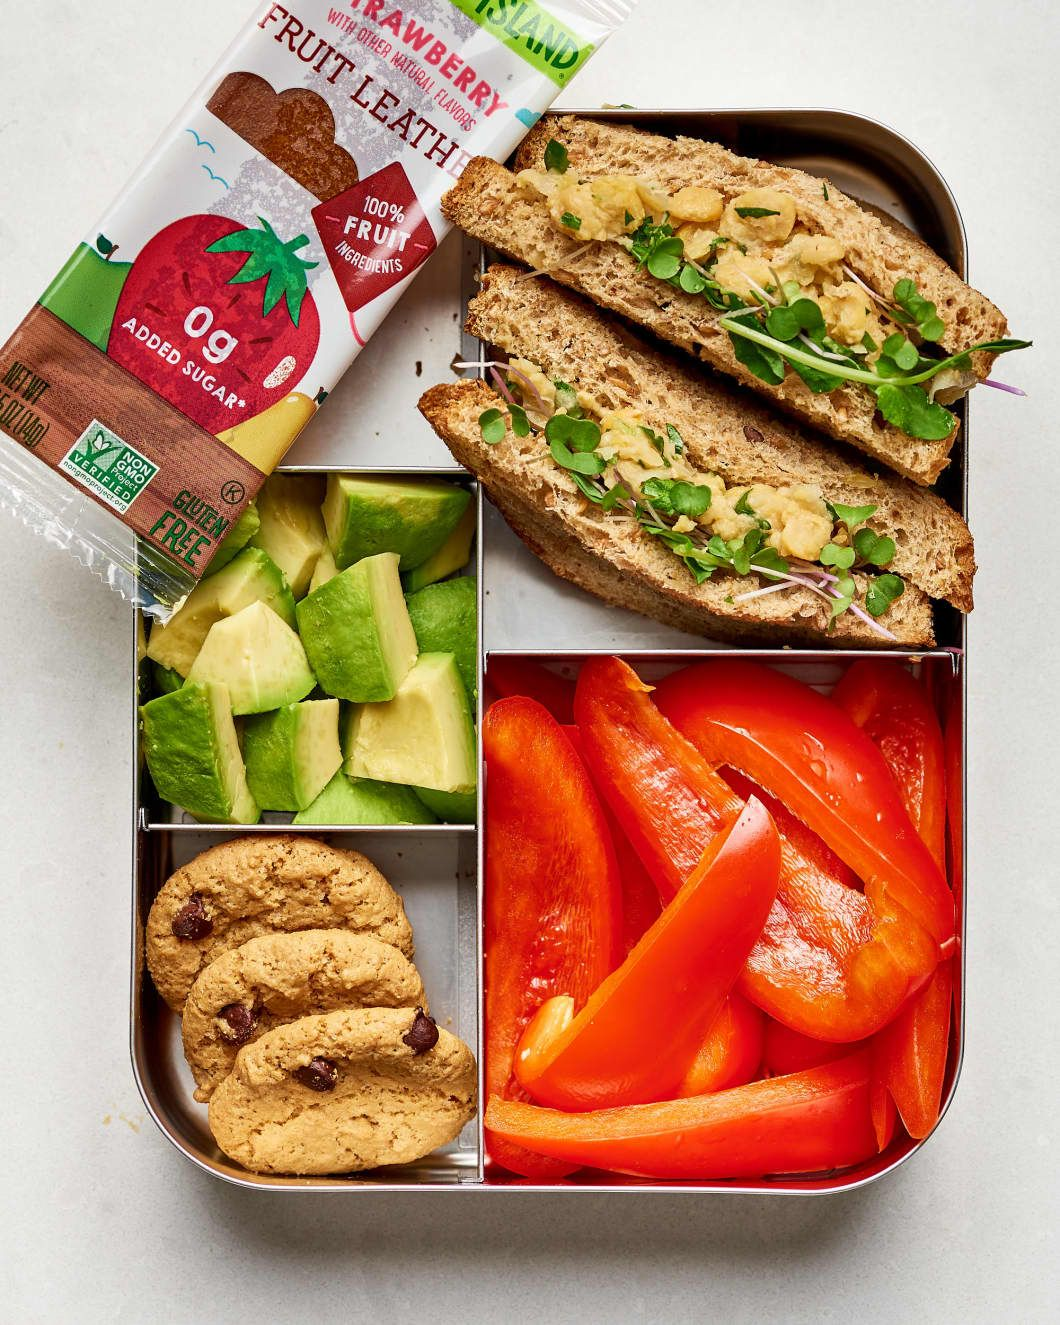 10 Easy Vegan Lunch Box Ideas images